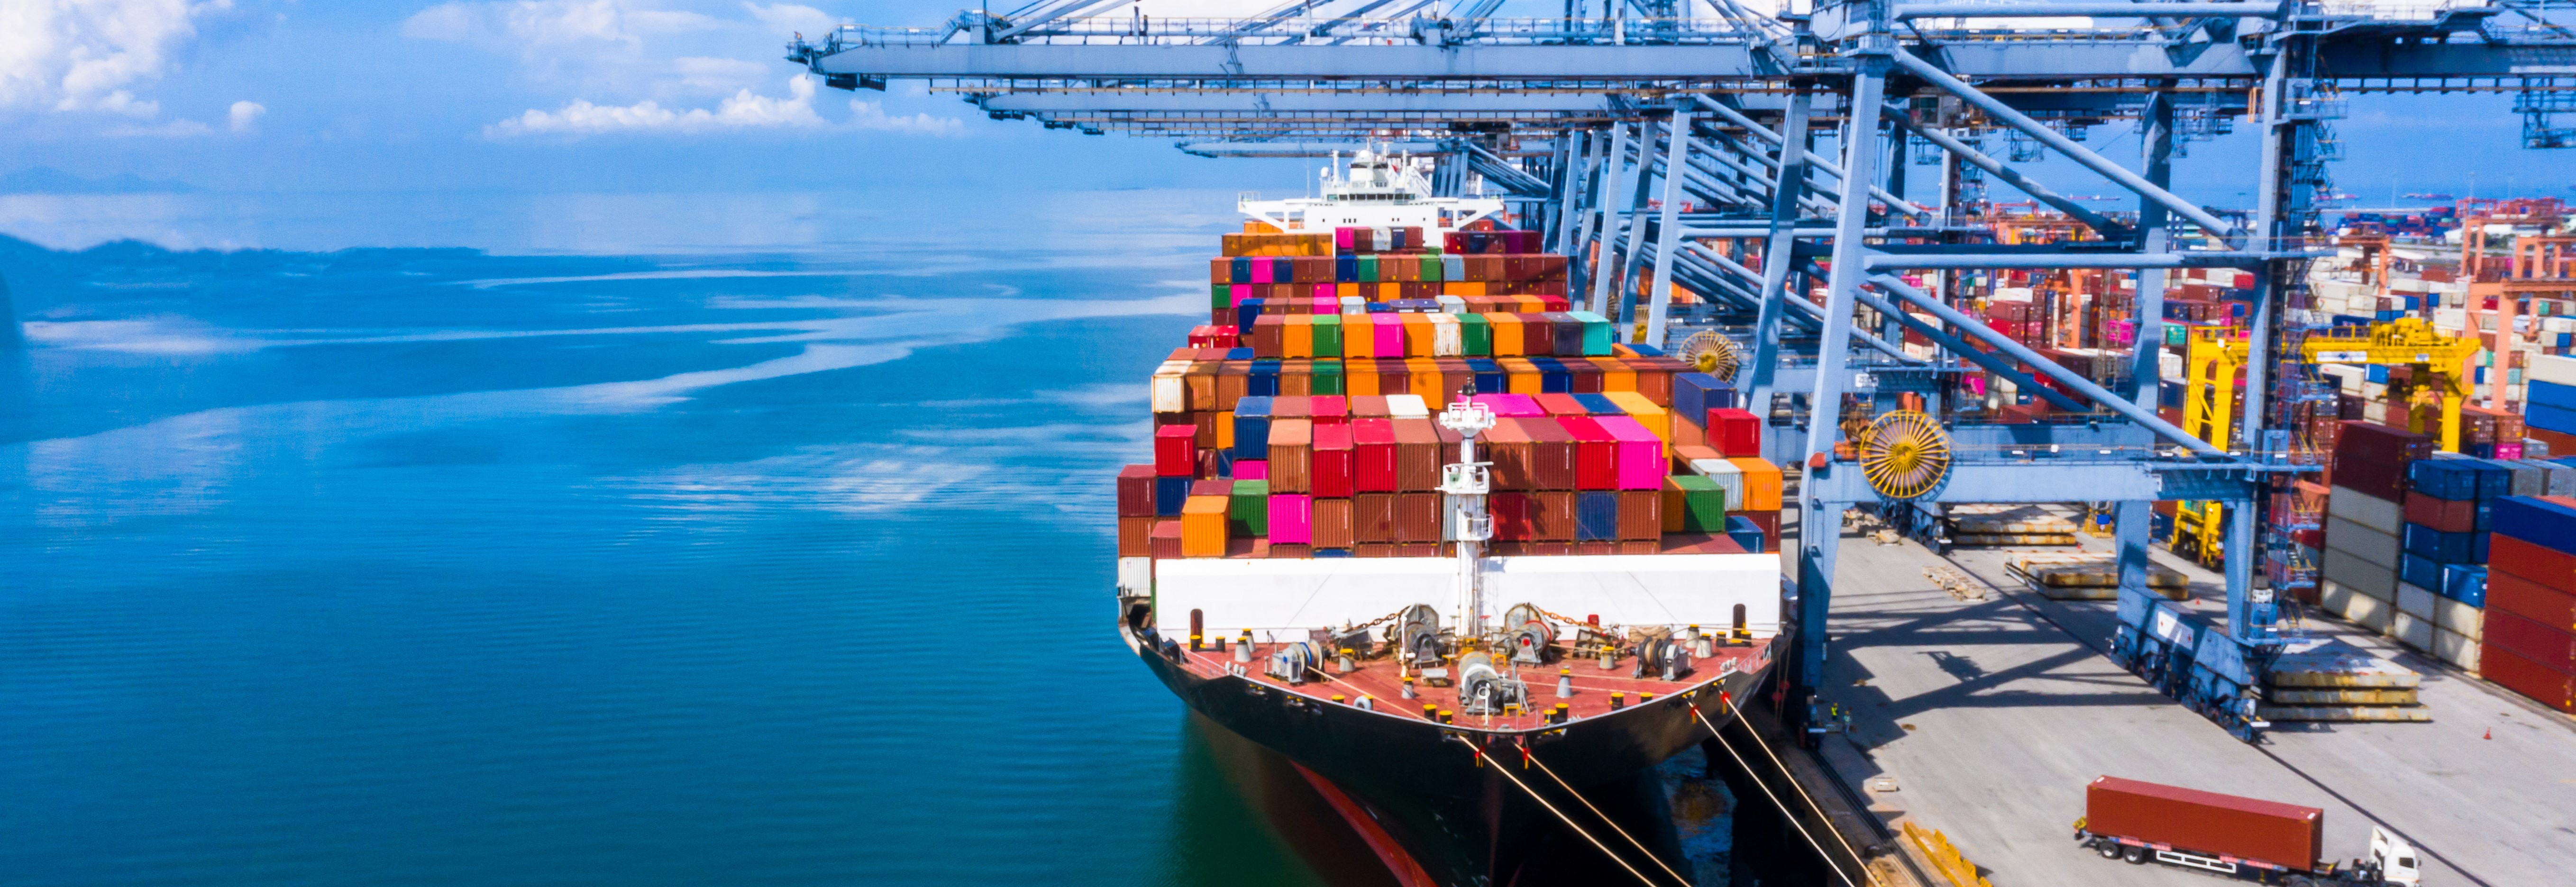 alixpartners global container shipping report 2020